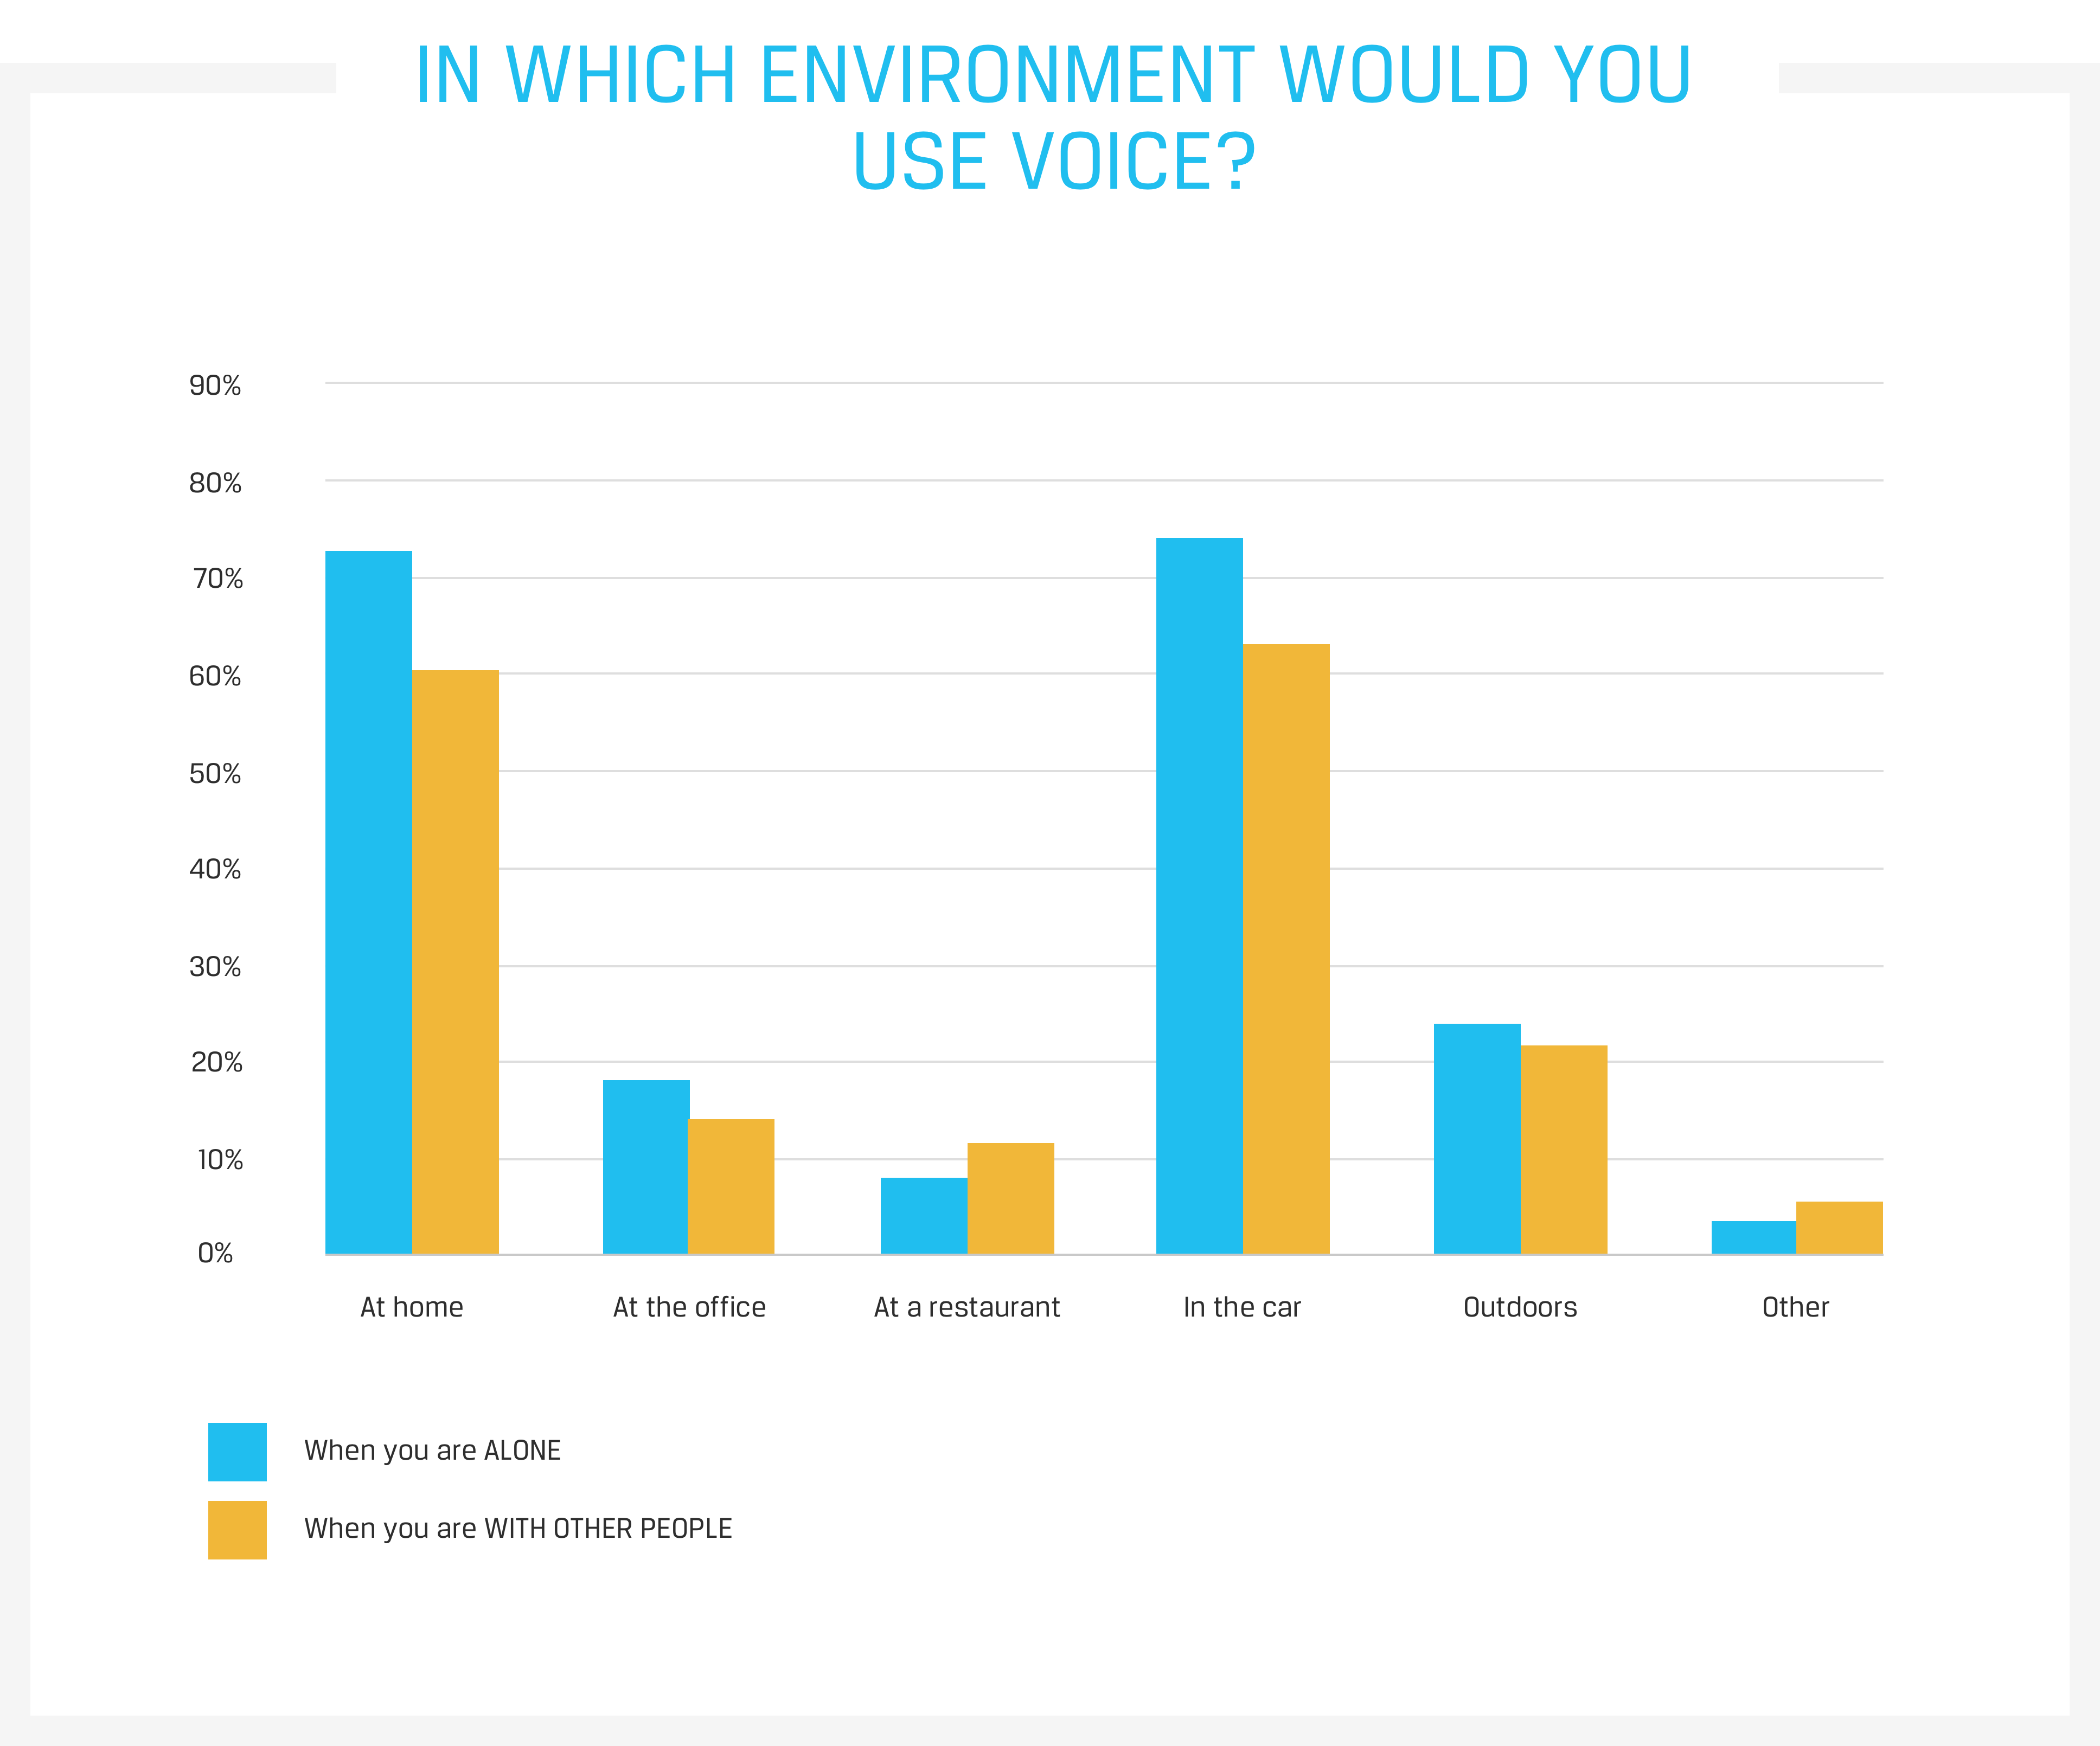 In which environment would you use voice experiences?